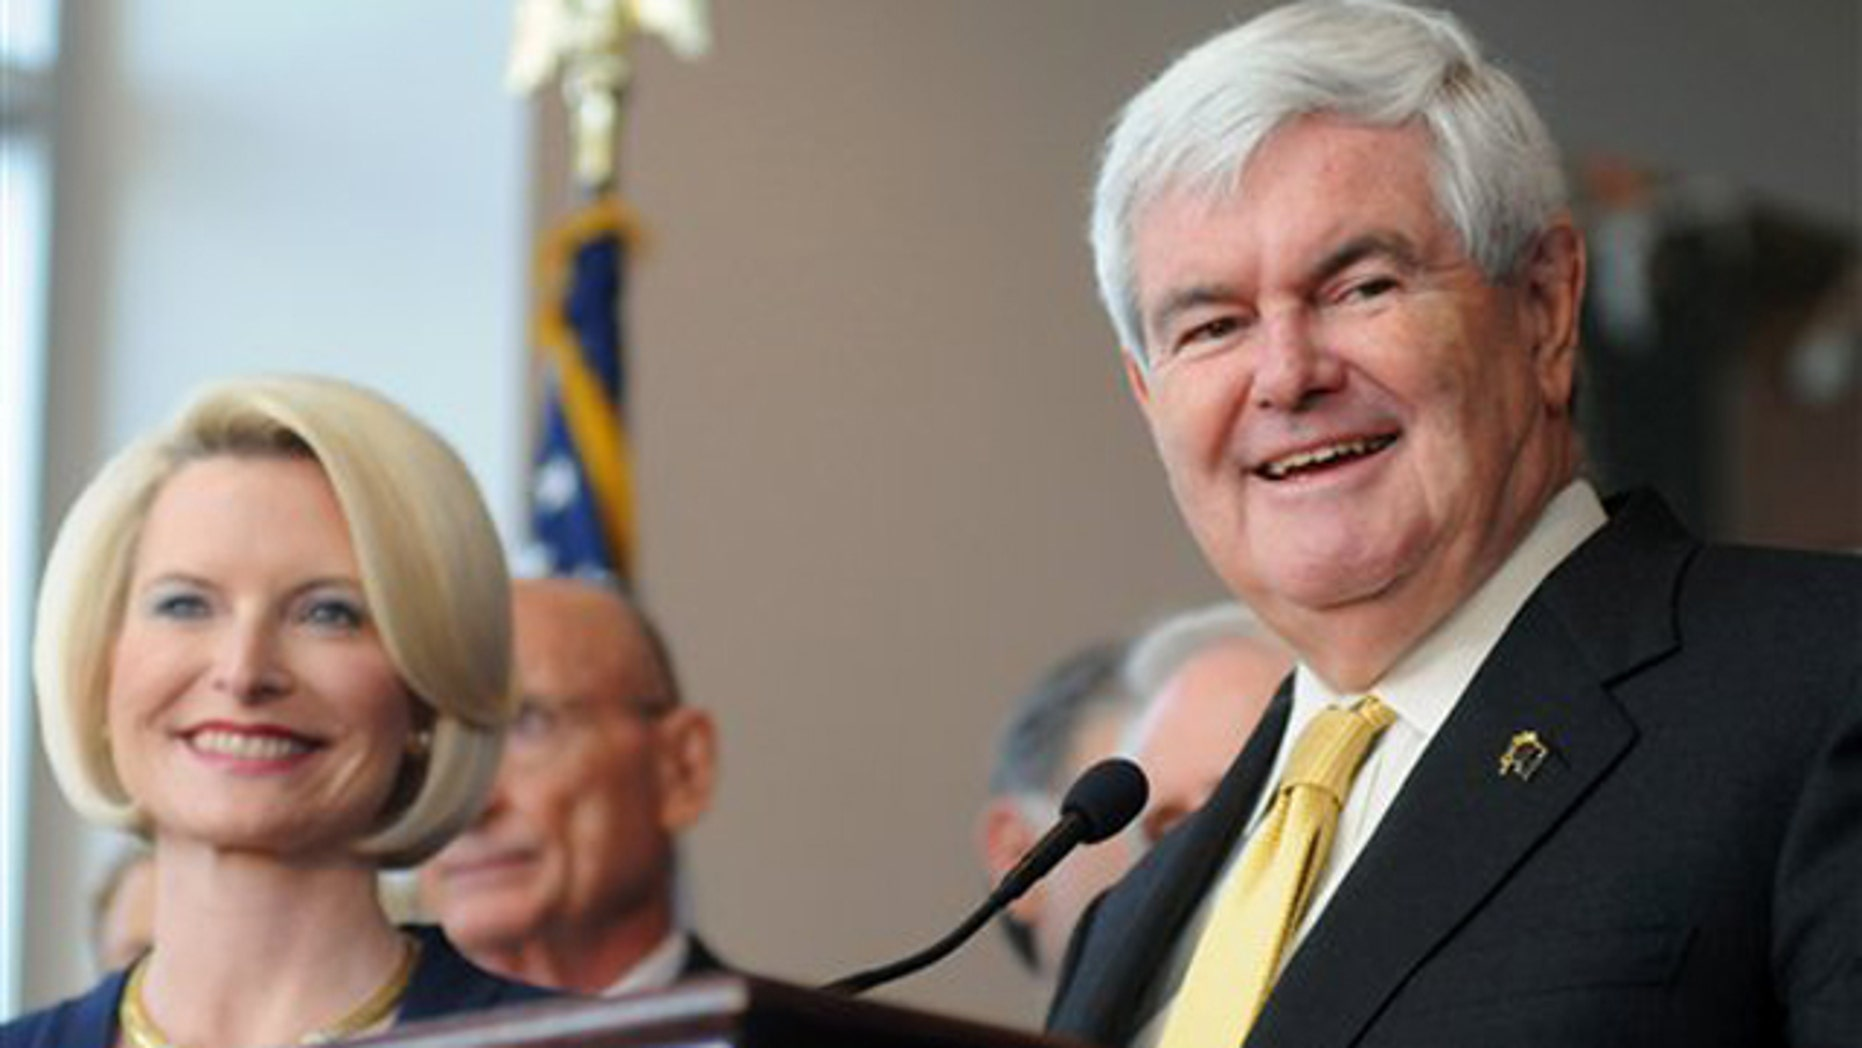 March 7, 2012: Newt Gingrich, accompanied by his wife Callista, speaks at a rally in Montgomery, Ala.